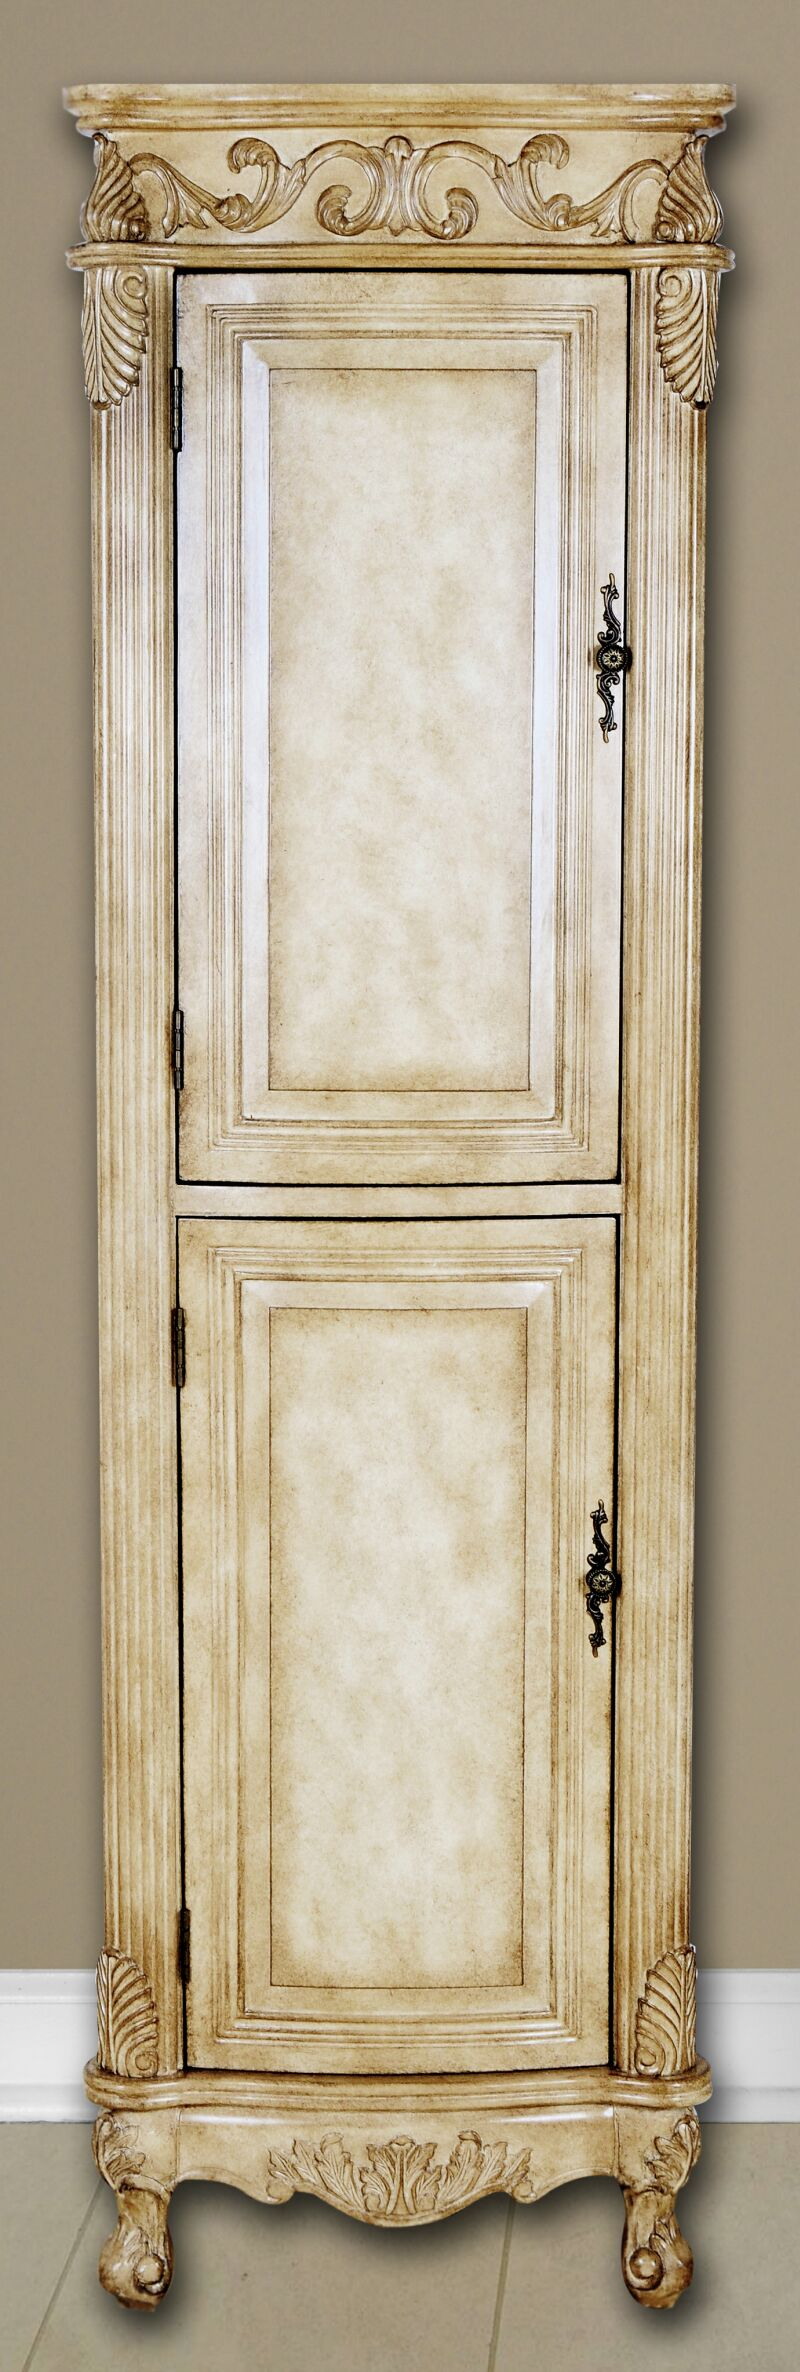 Add Two Door Linen Cabinet: 21